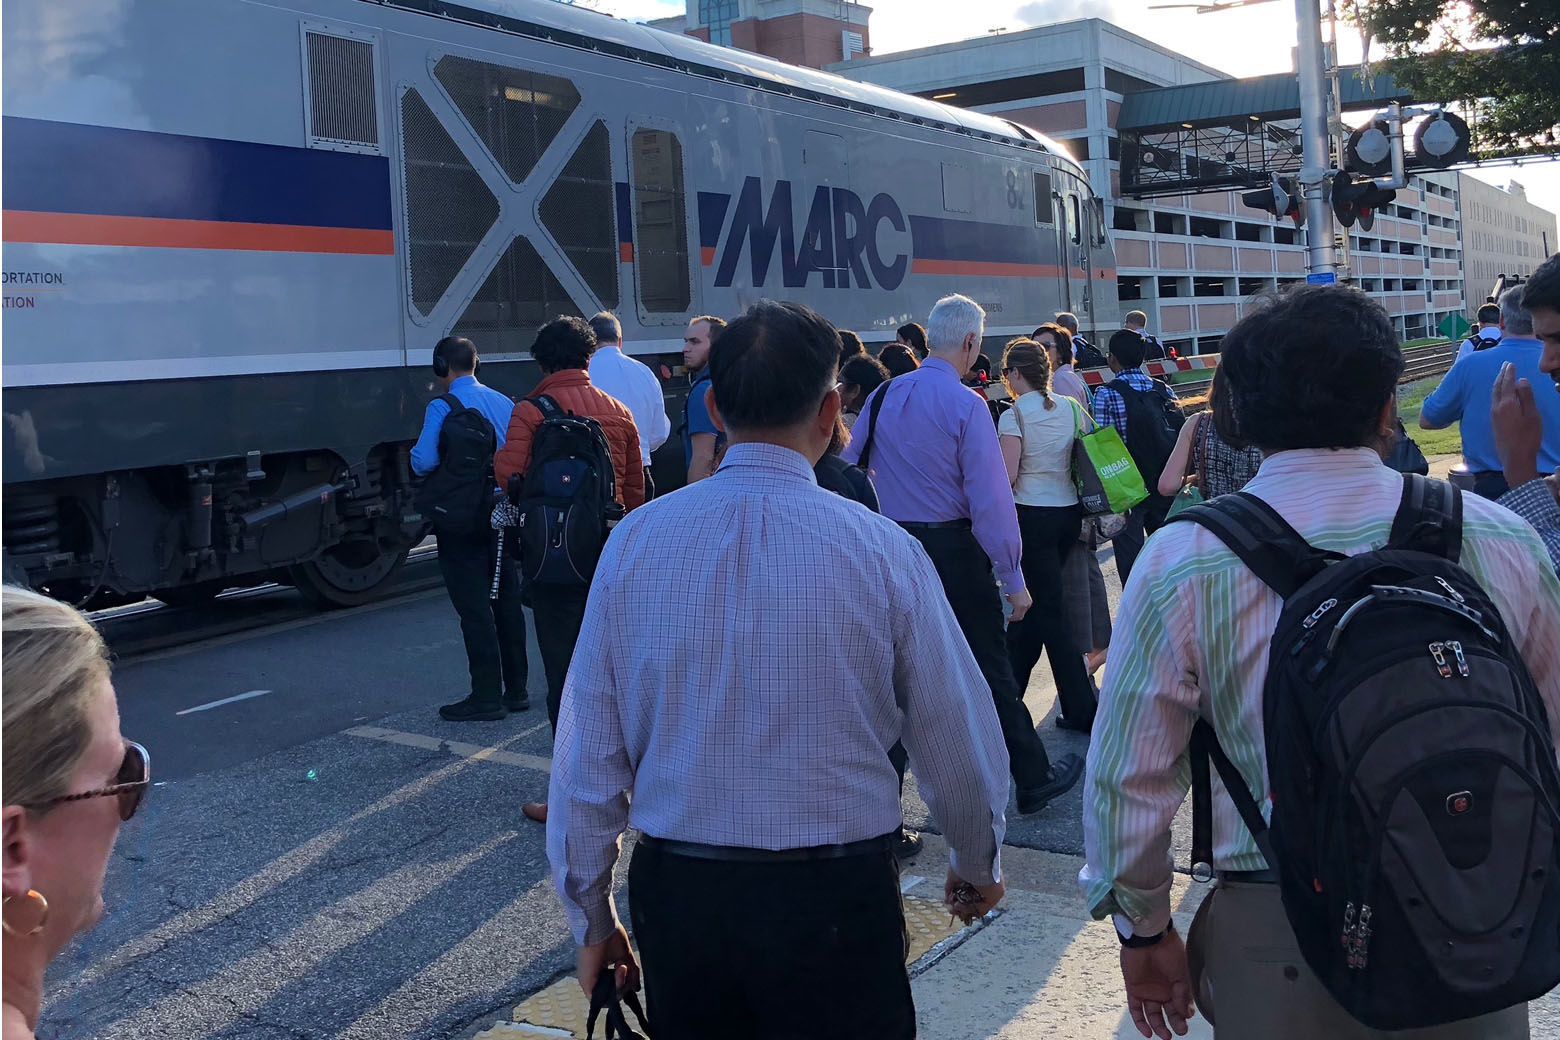 In this WTOP photo, commuters in Old Town Gaithersburg wait to board a MARC train on a recent morning. The D.C. region's traffic problems are well-documented, and in Montgomery County, residents complain about gridlock while debating how best to alleviate it. (WTOP/Kate Ryan)